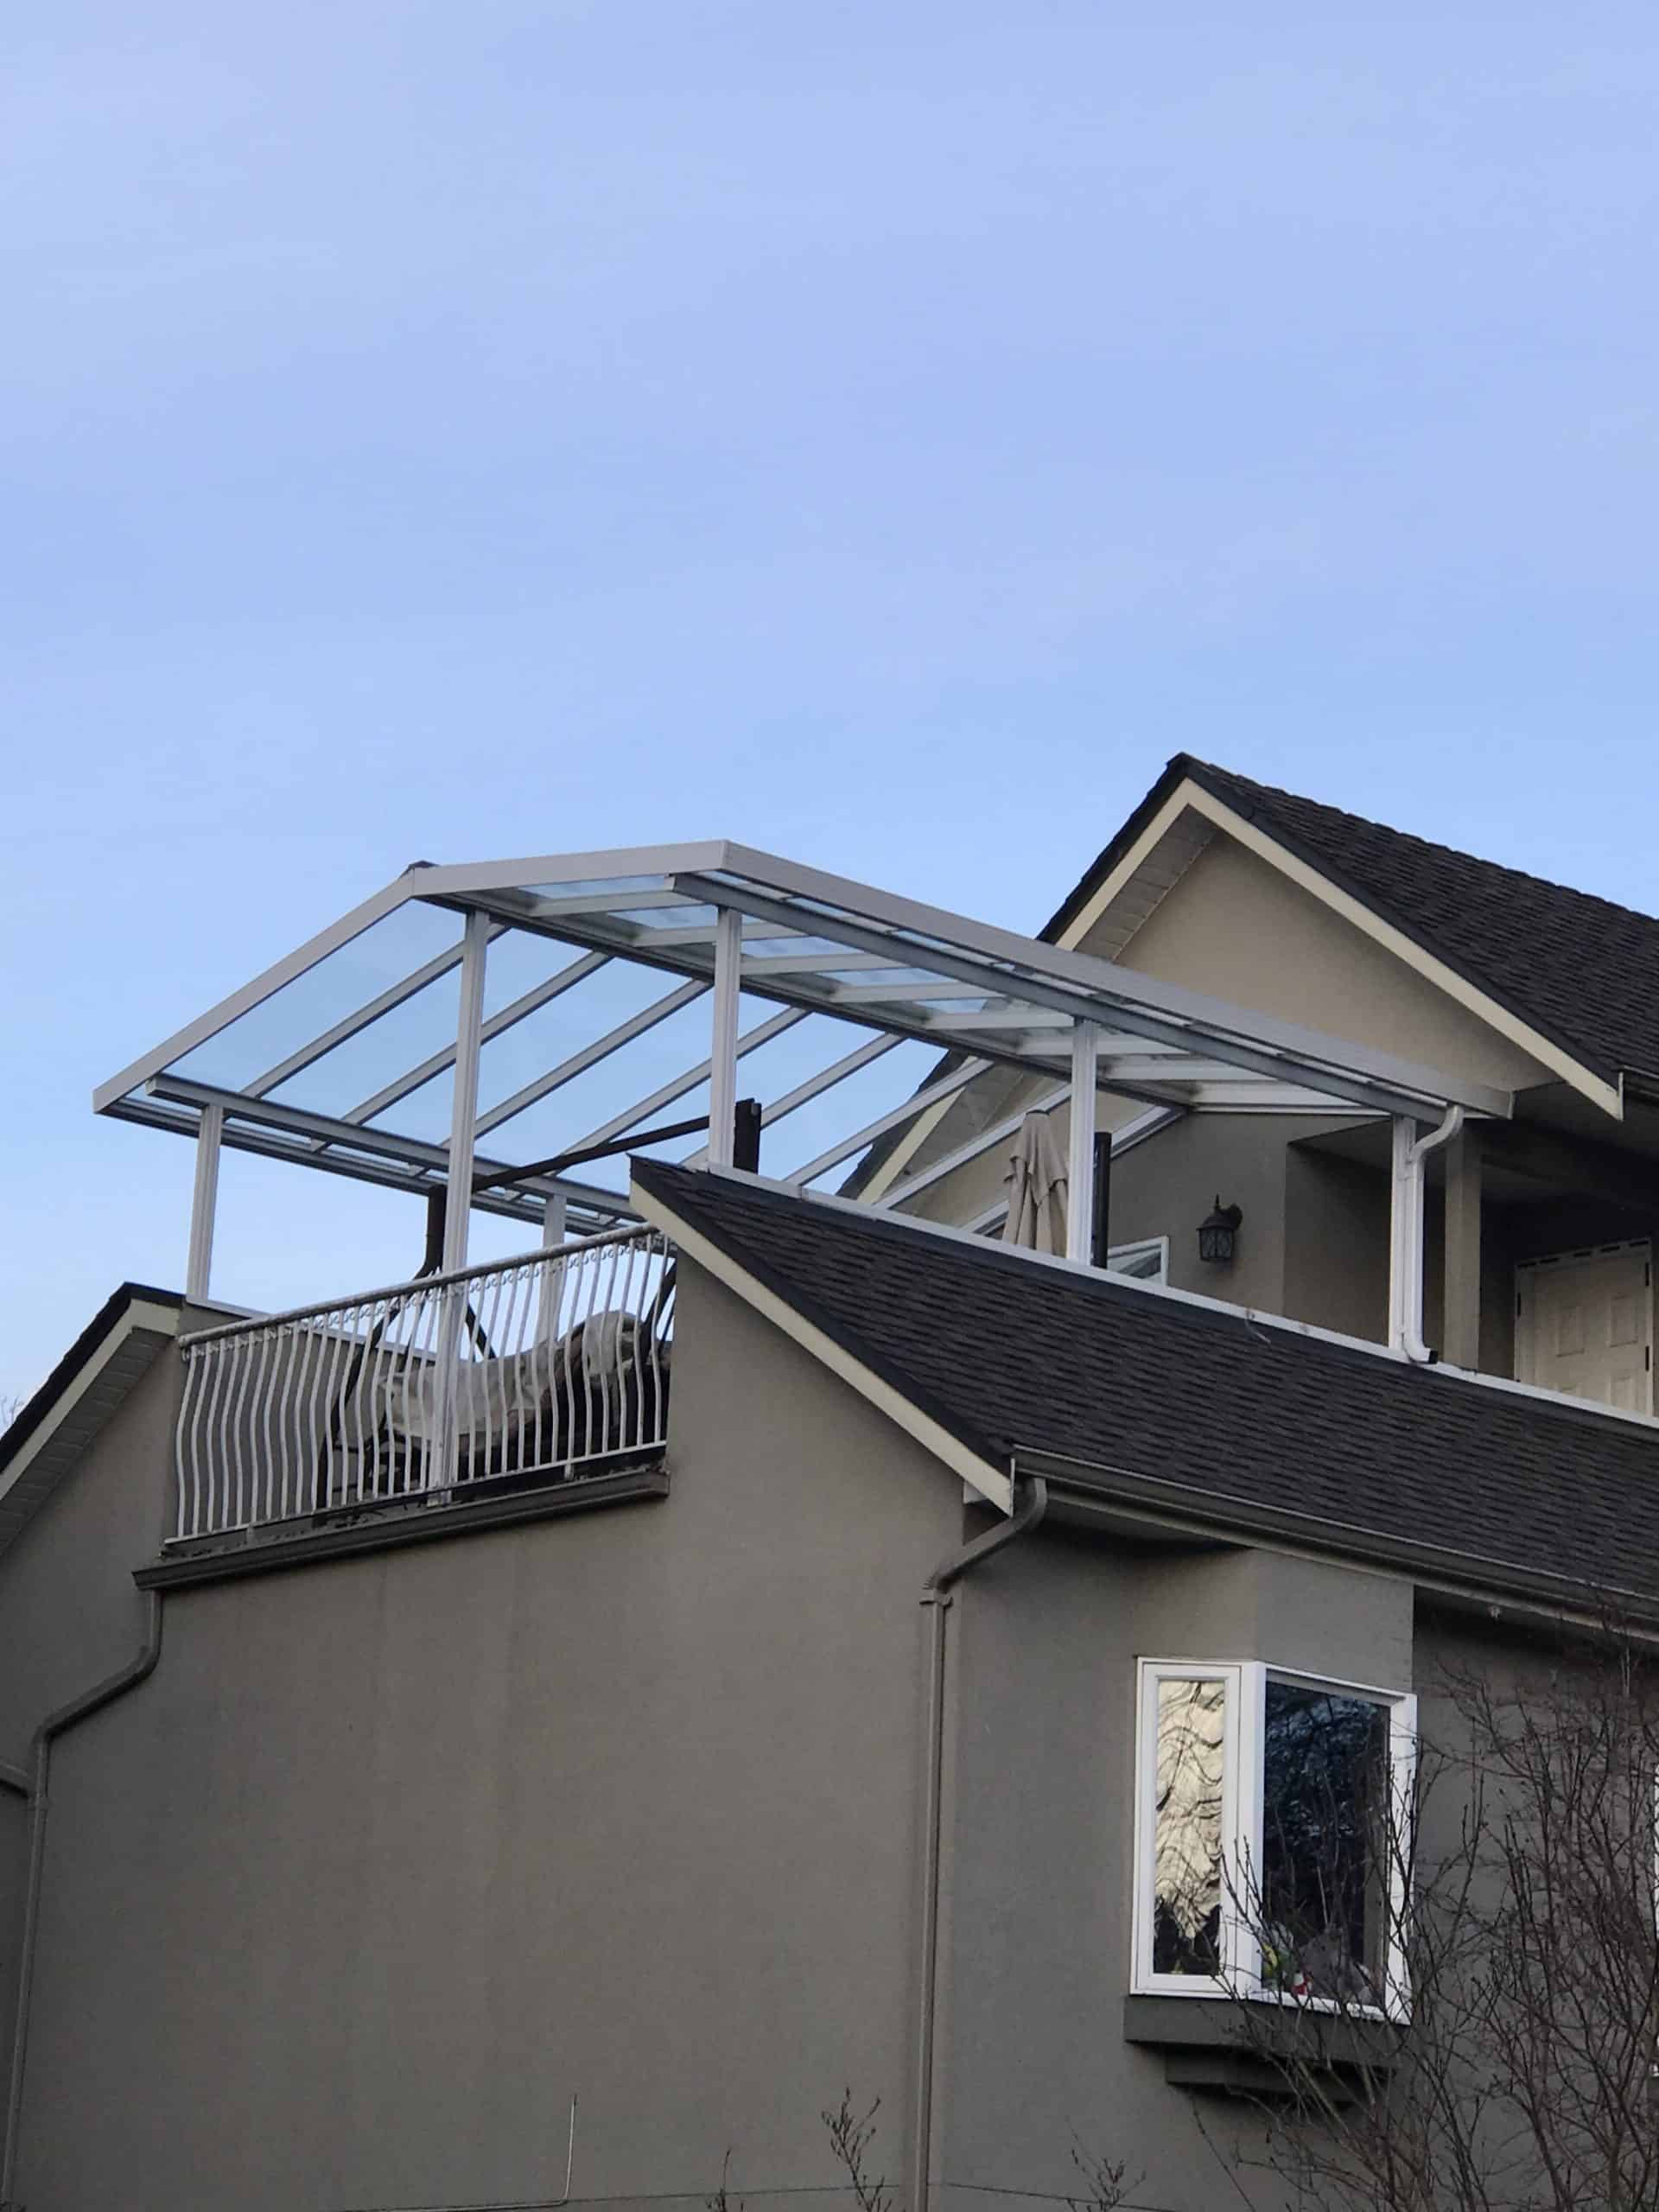 Peaked Roof Glass Canopy System in Vancouver and Coquitlam